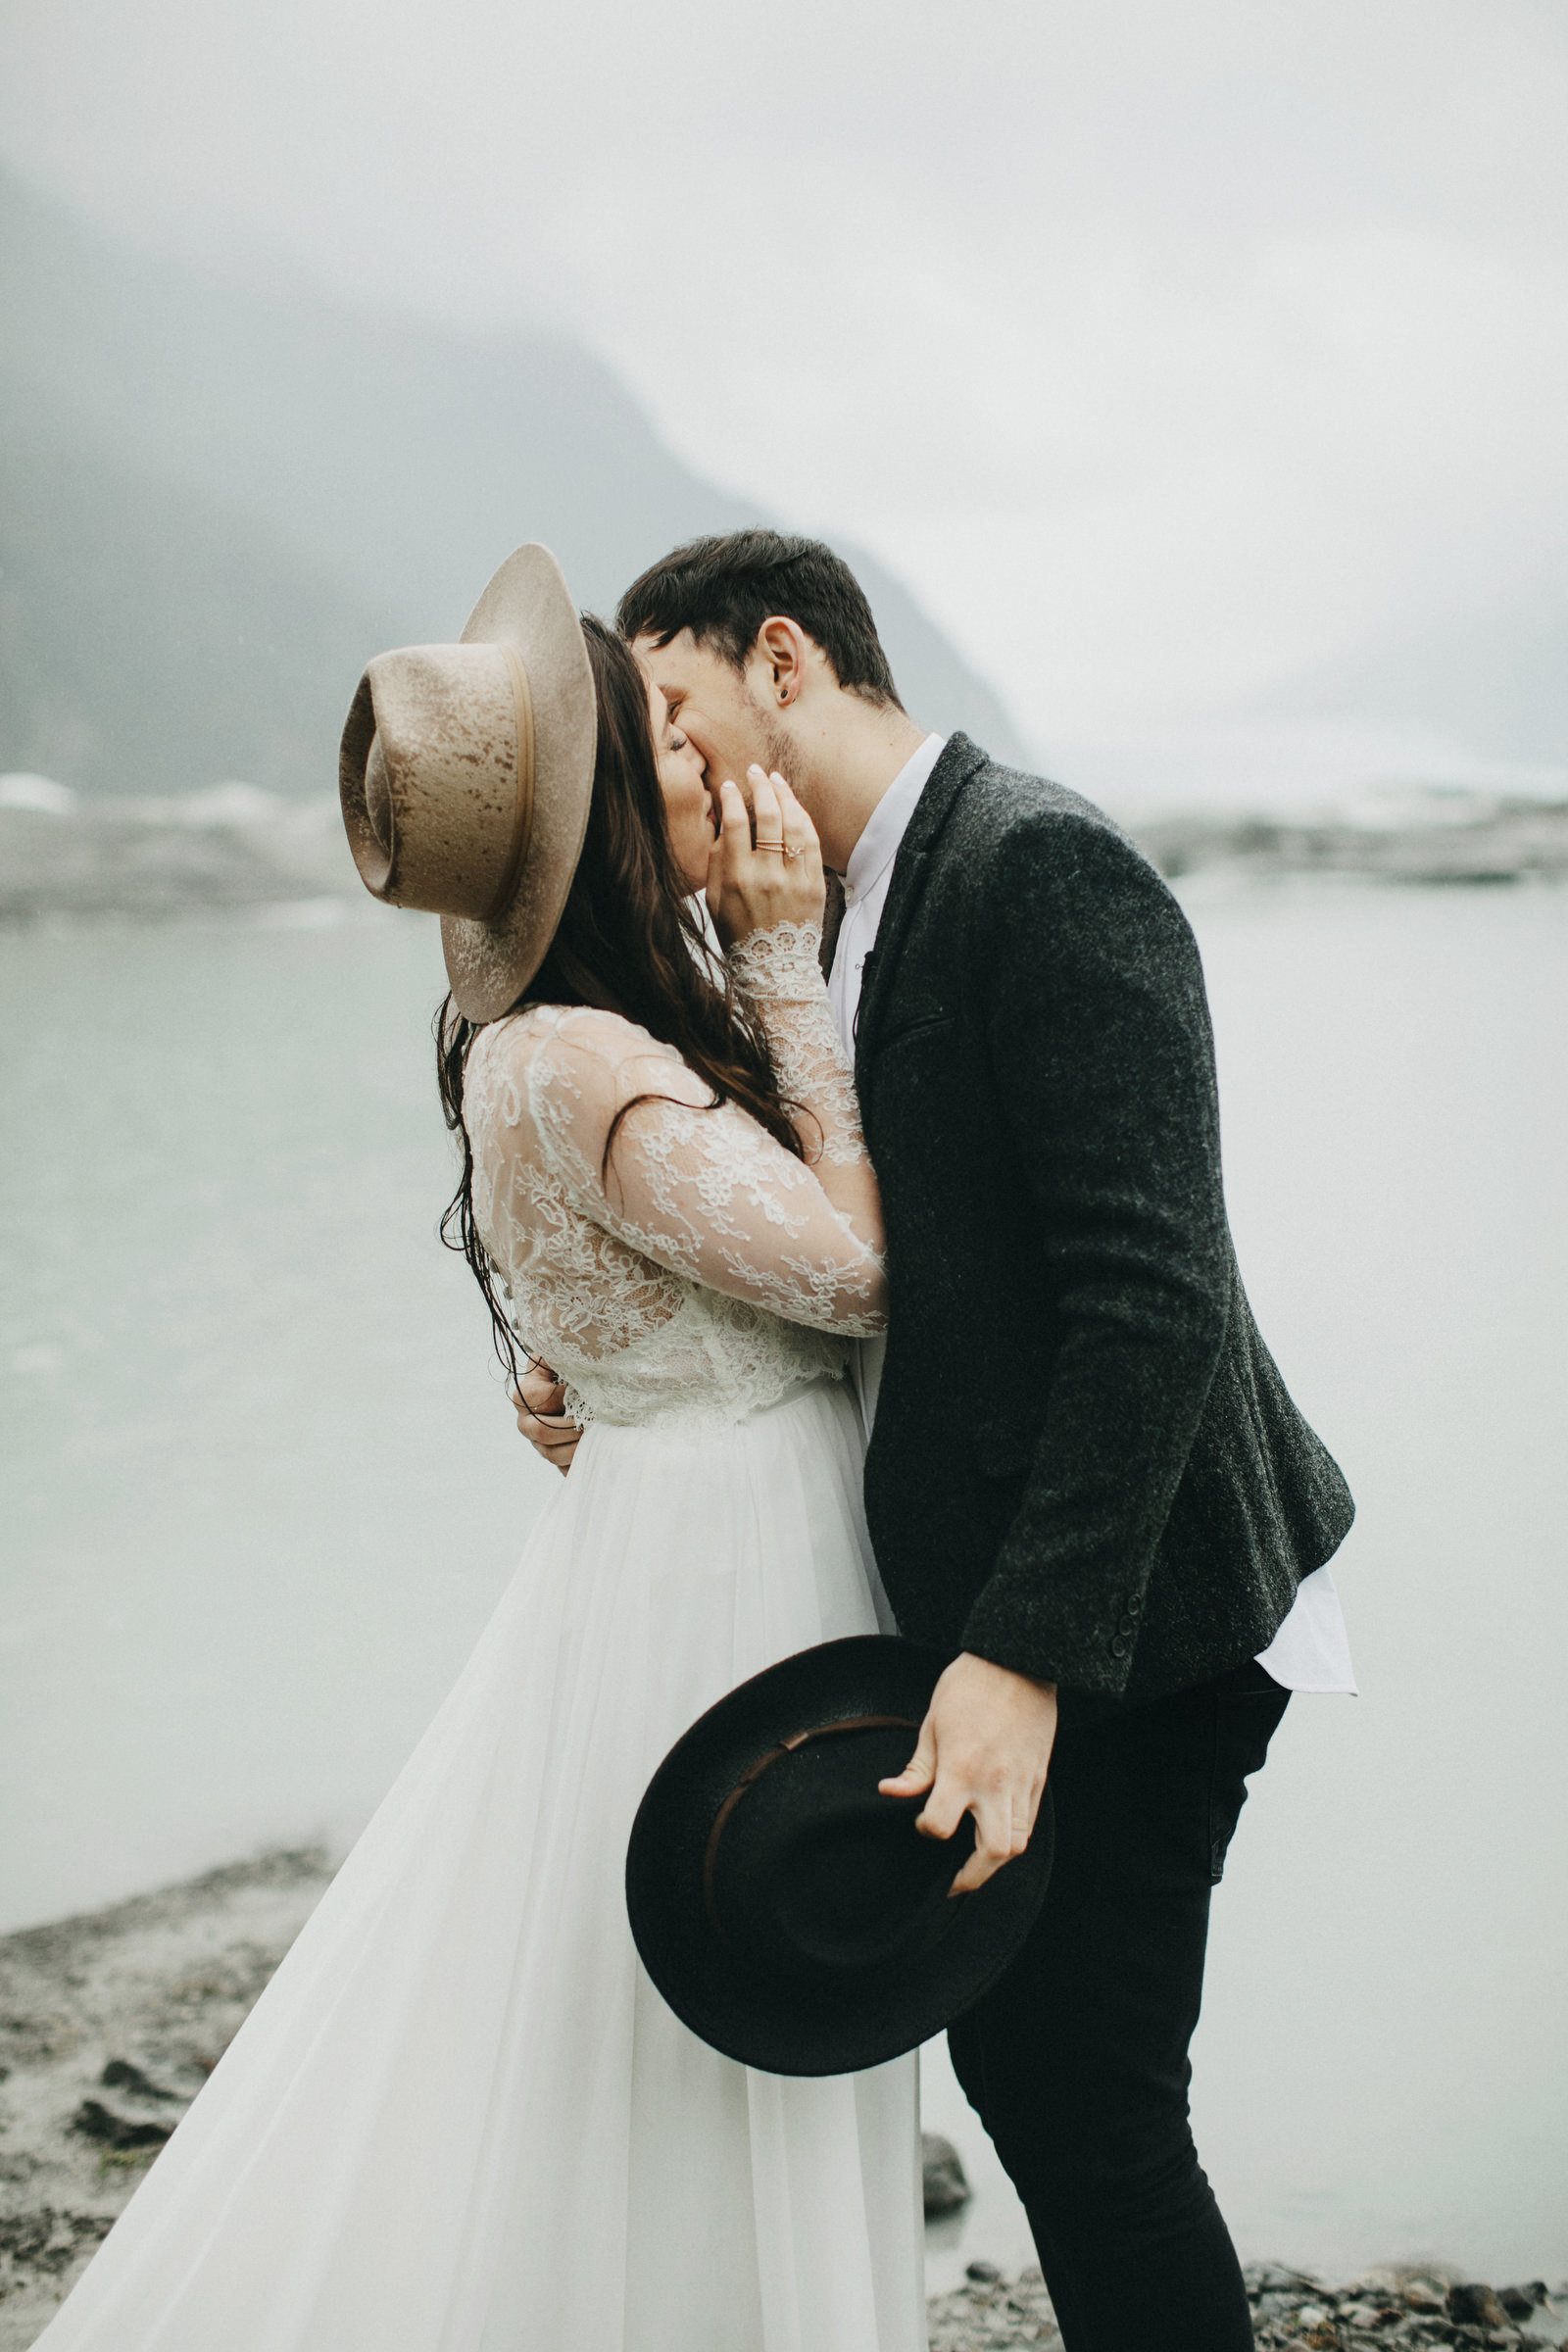 athena-and-camron-alaska-elopement-wedding-inspiration-india-earl-athena-grace-glacier-lagoon-wedding85